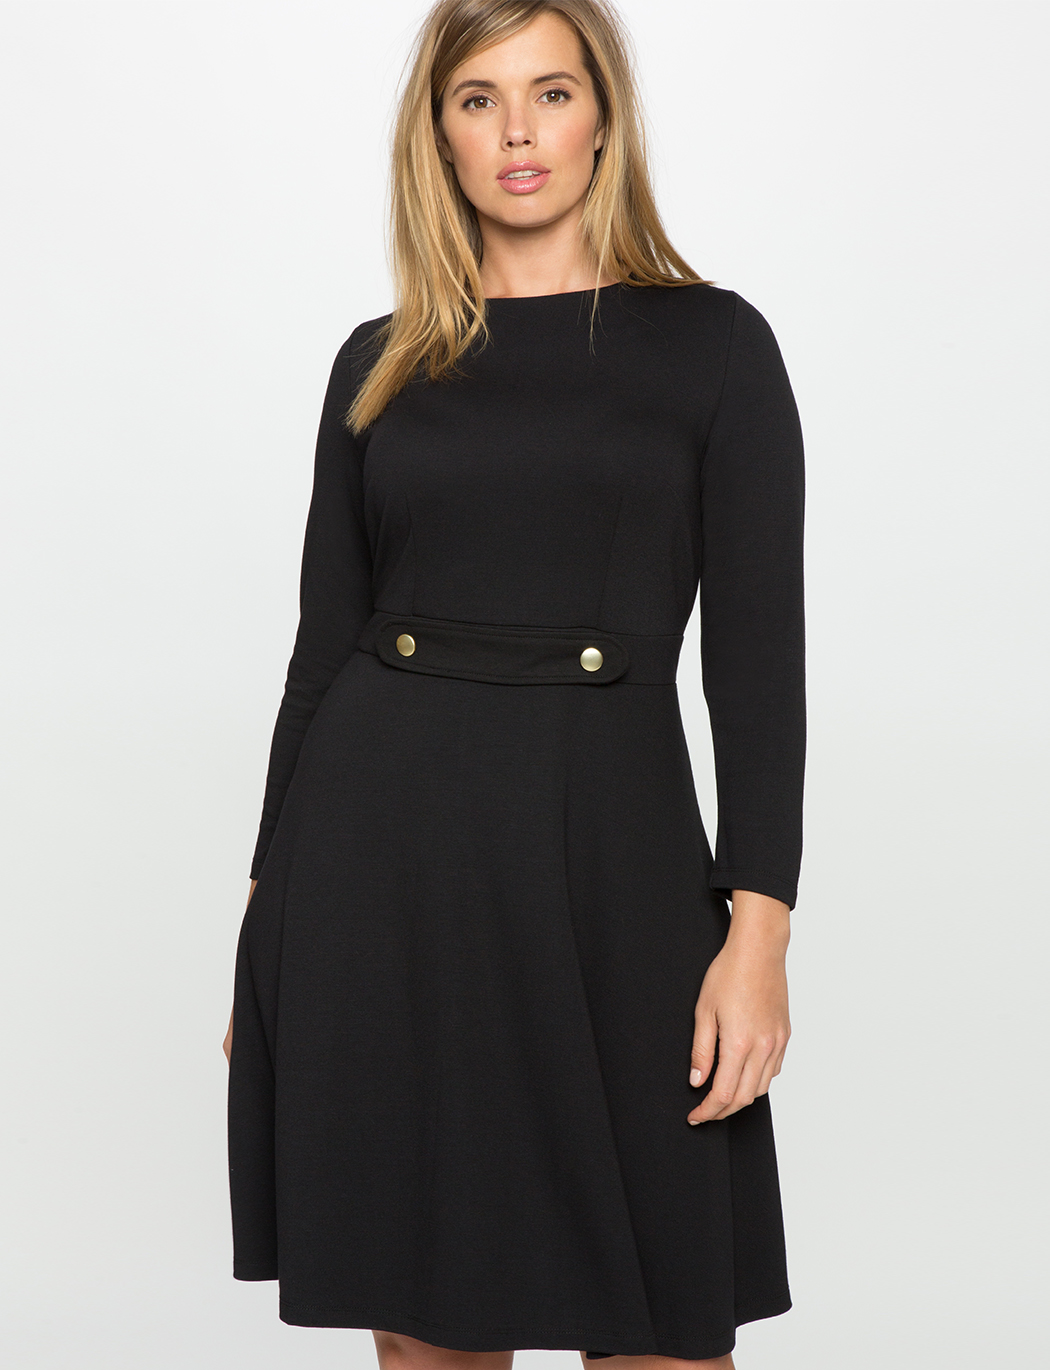 6707a6f5021 Long Sleeve Fit and Flare Dress with Button Detail | Women's Plus ...